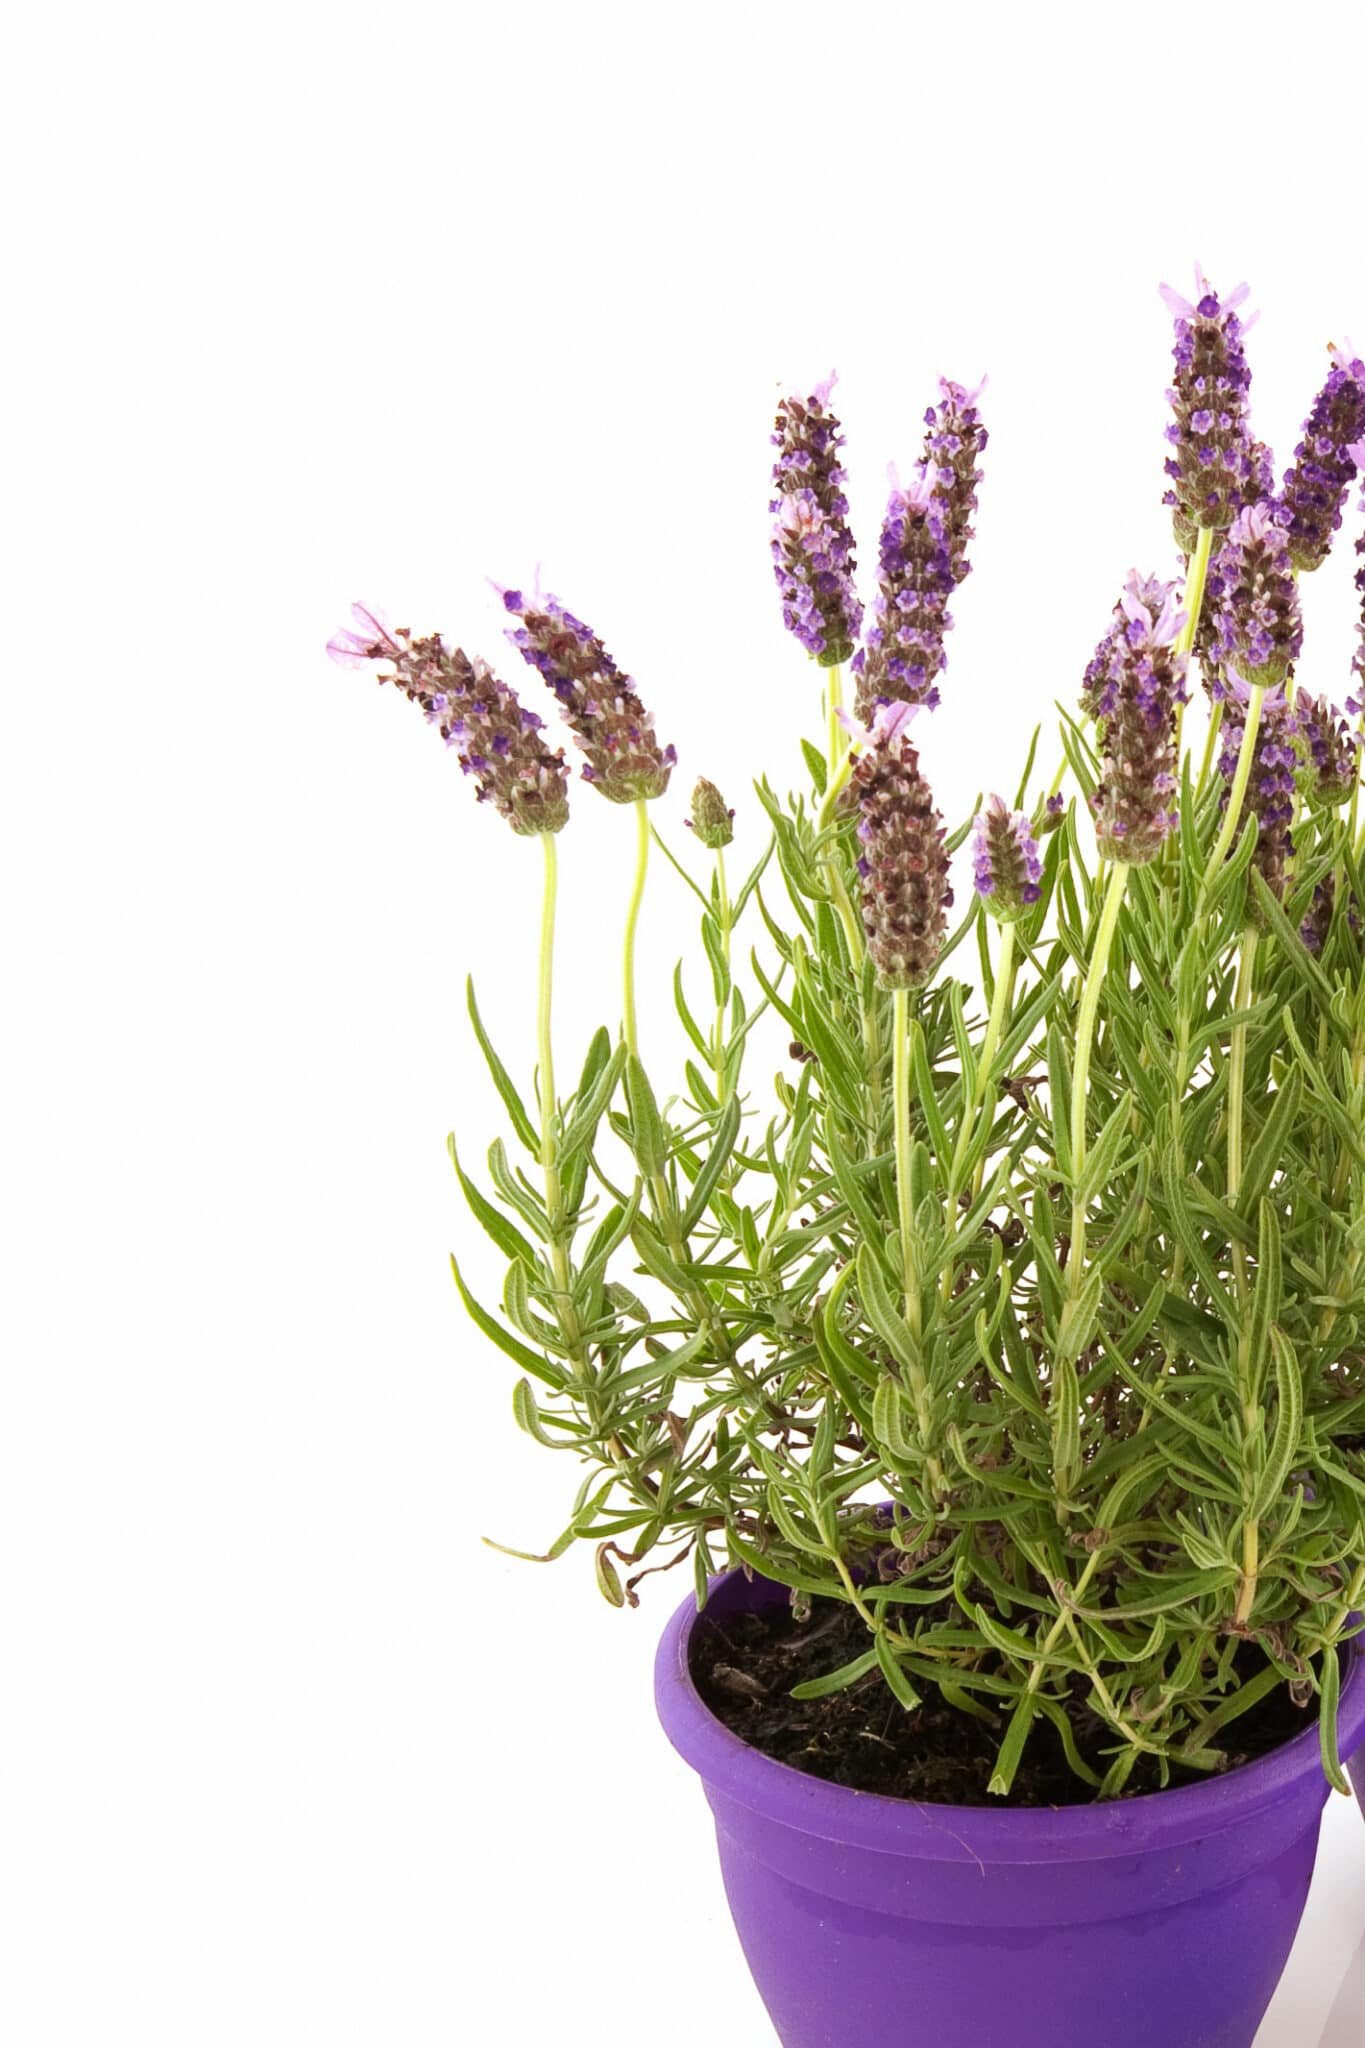 An image of growing lavender in pots against a bright white background.